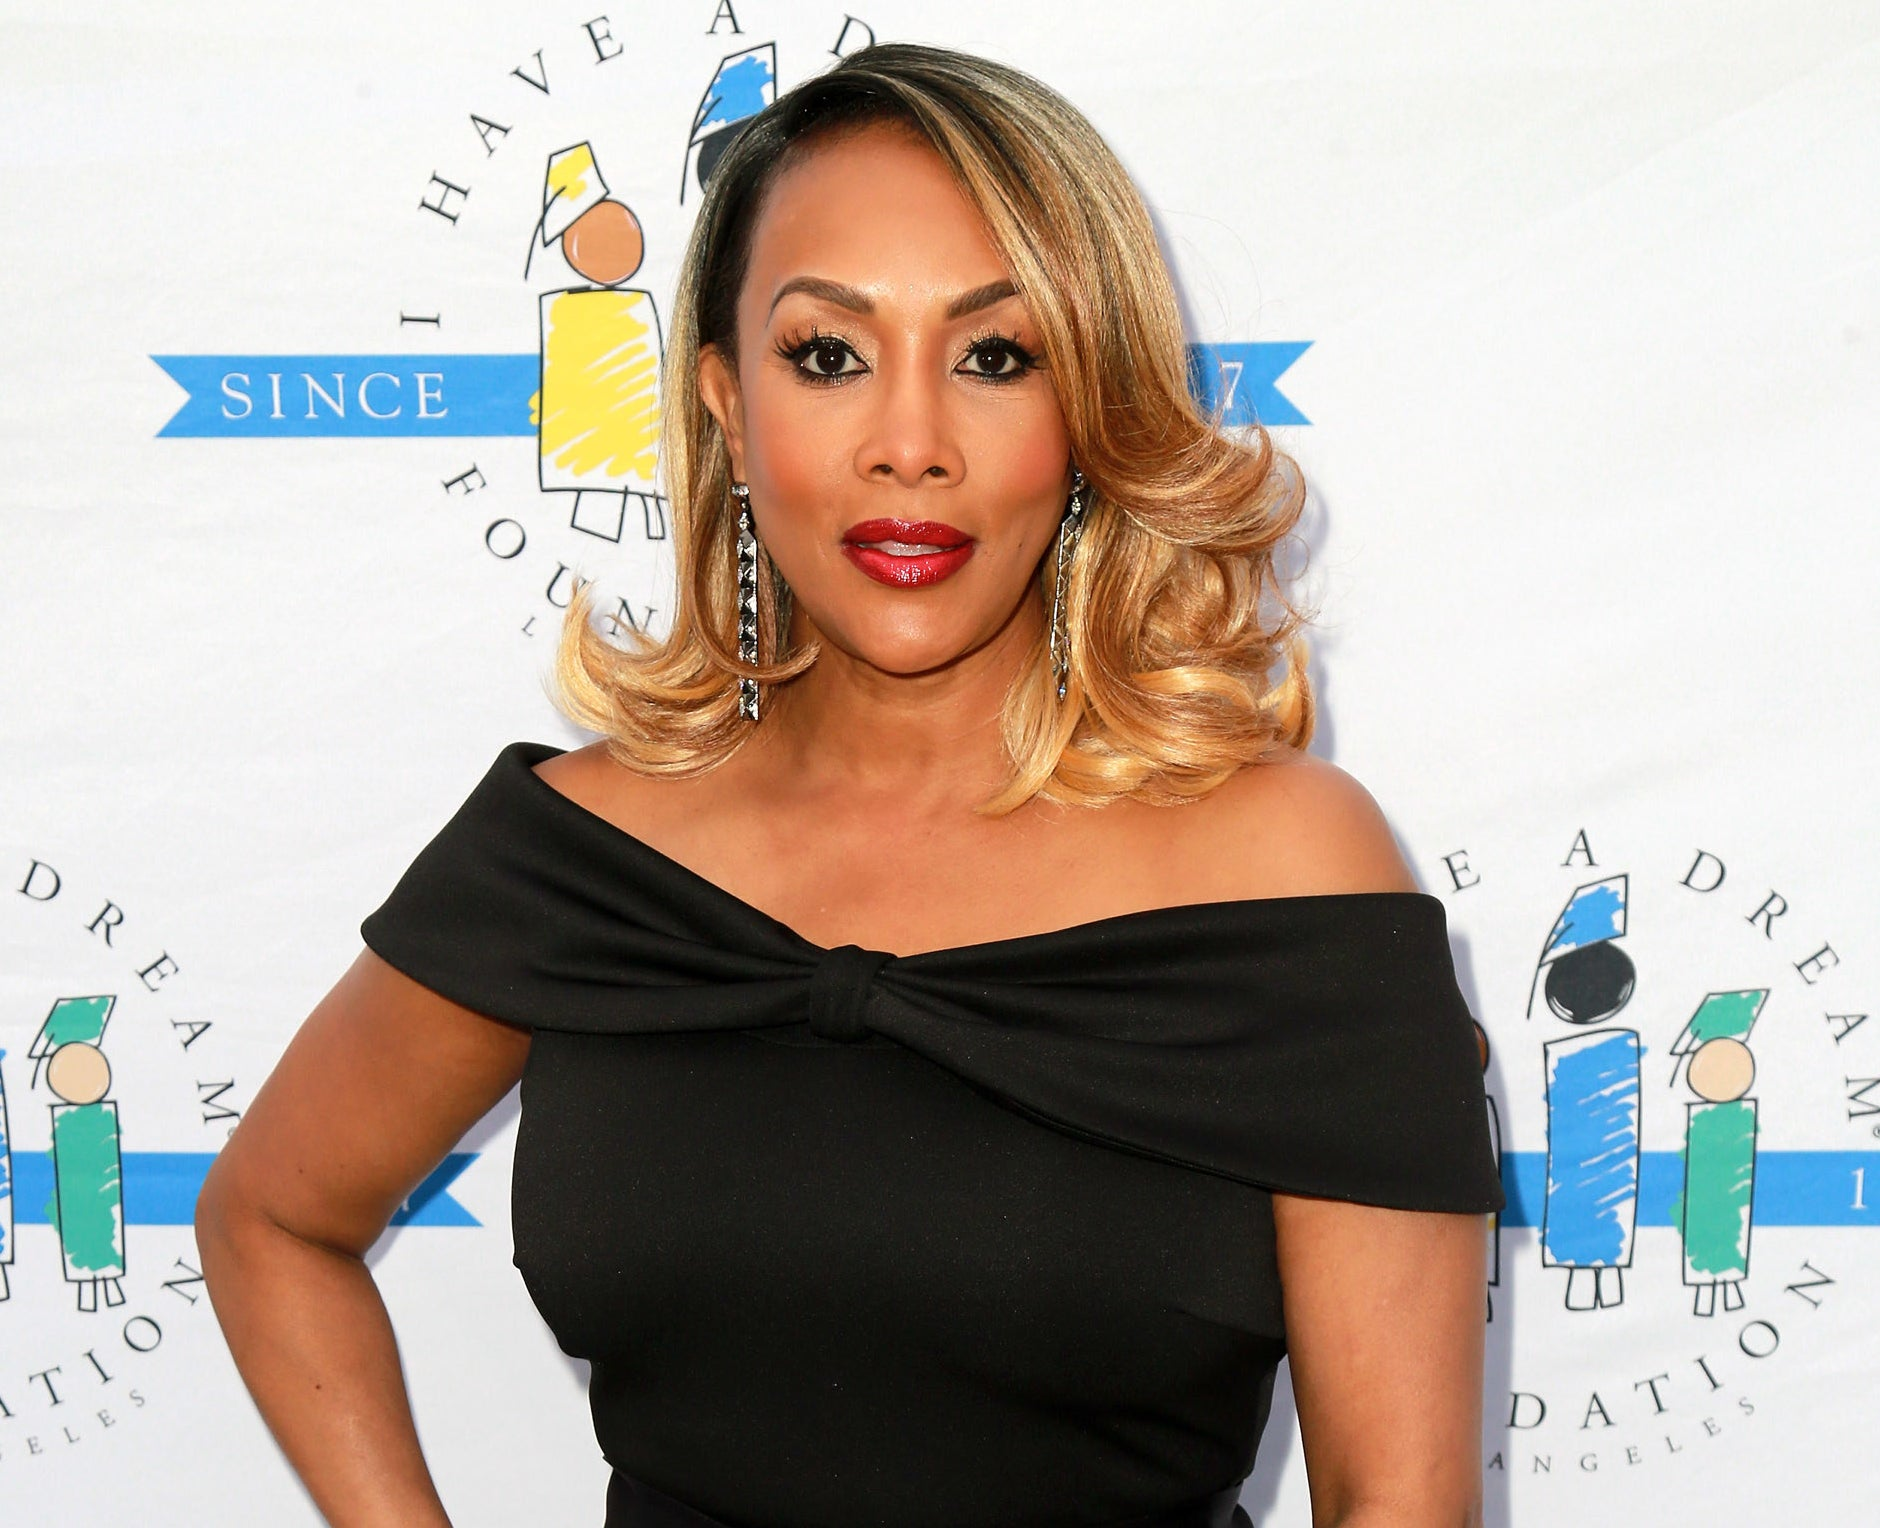 Vivica wears an off-the-shoulder black dress at a charity event